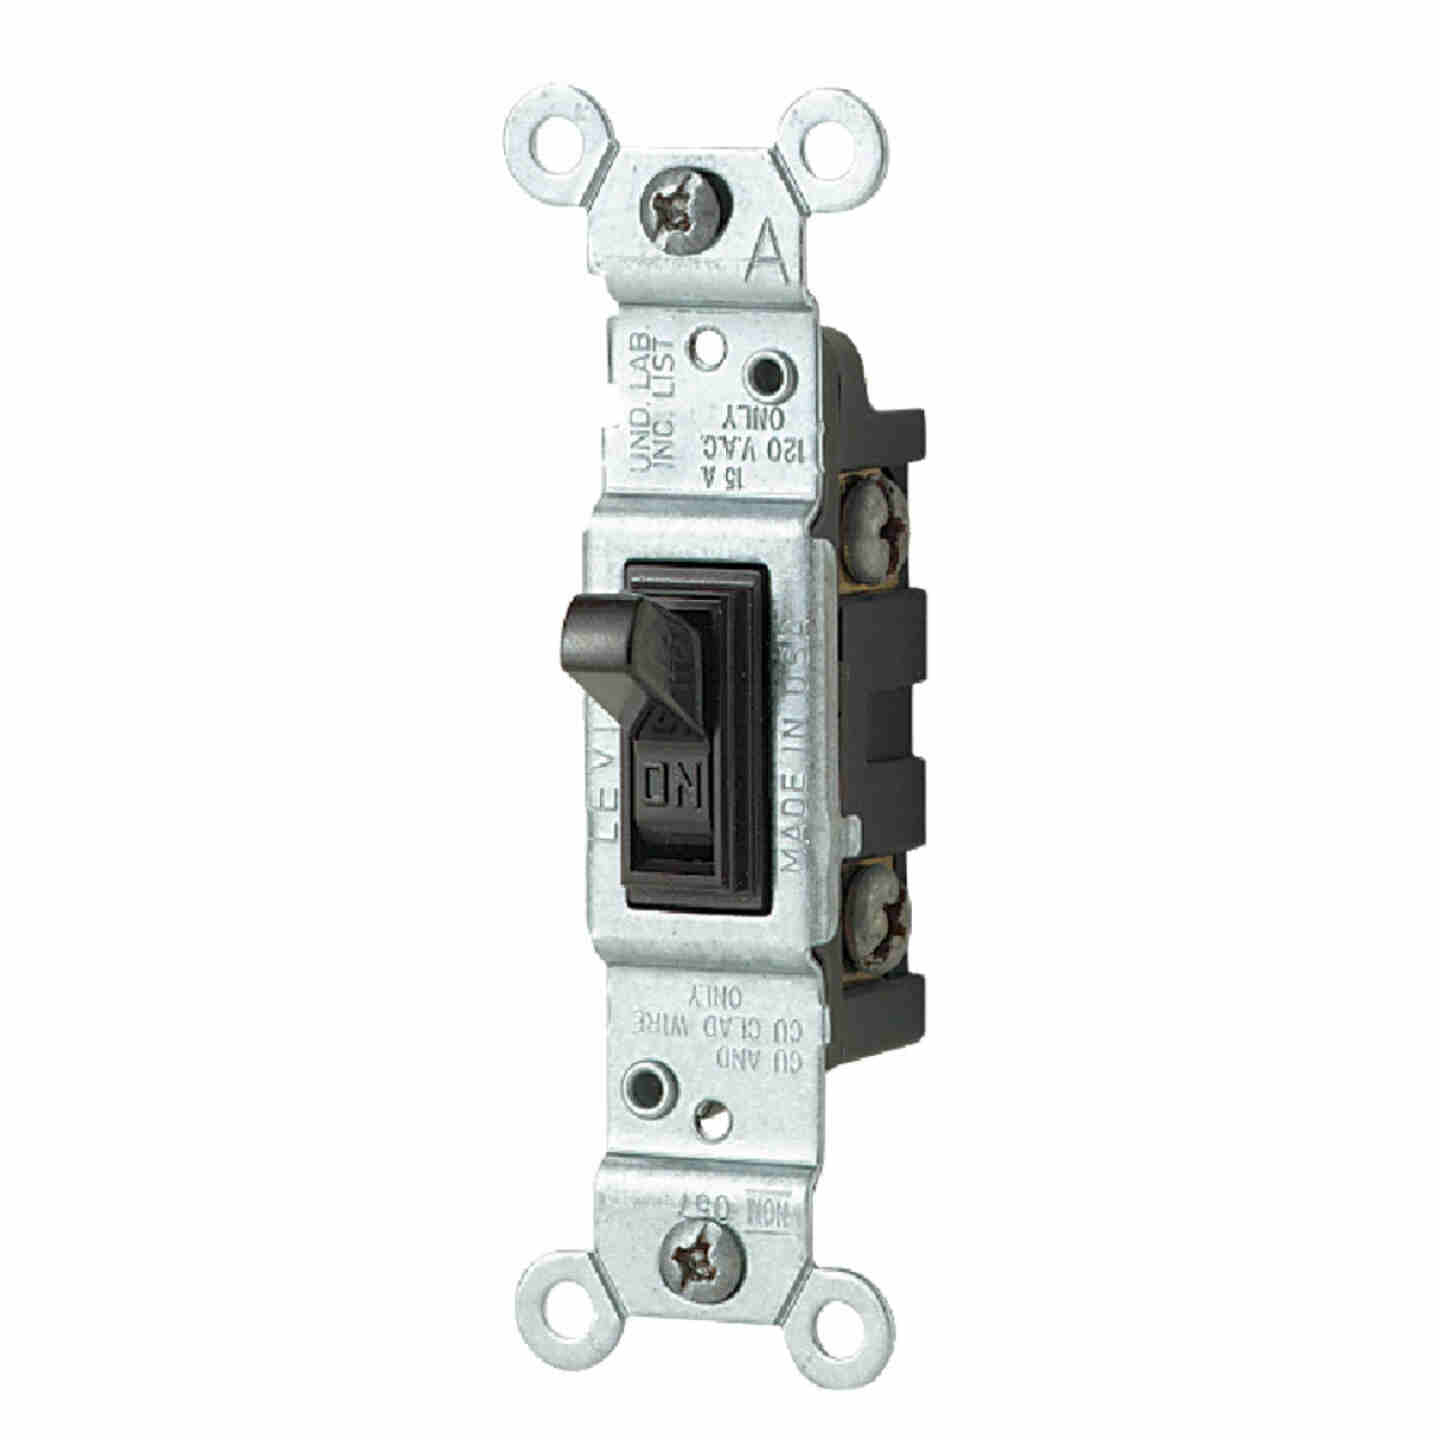 Leviton Residential Grade 15 Amp Toggle Single Pole Switch, Brown Image 1